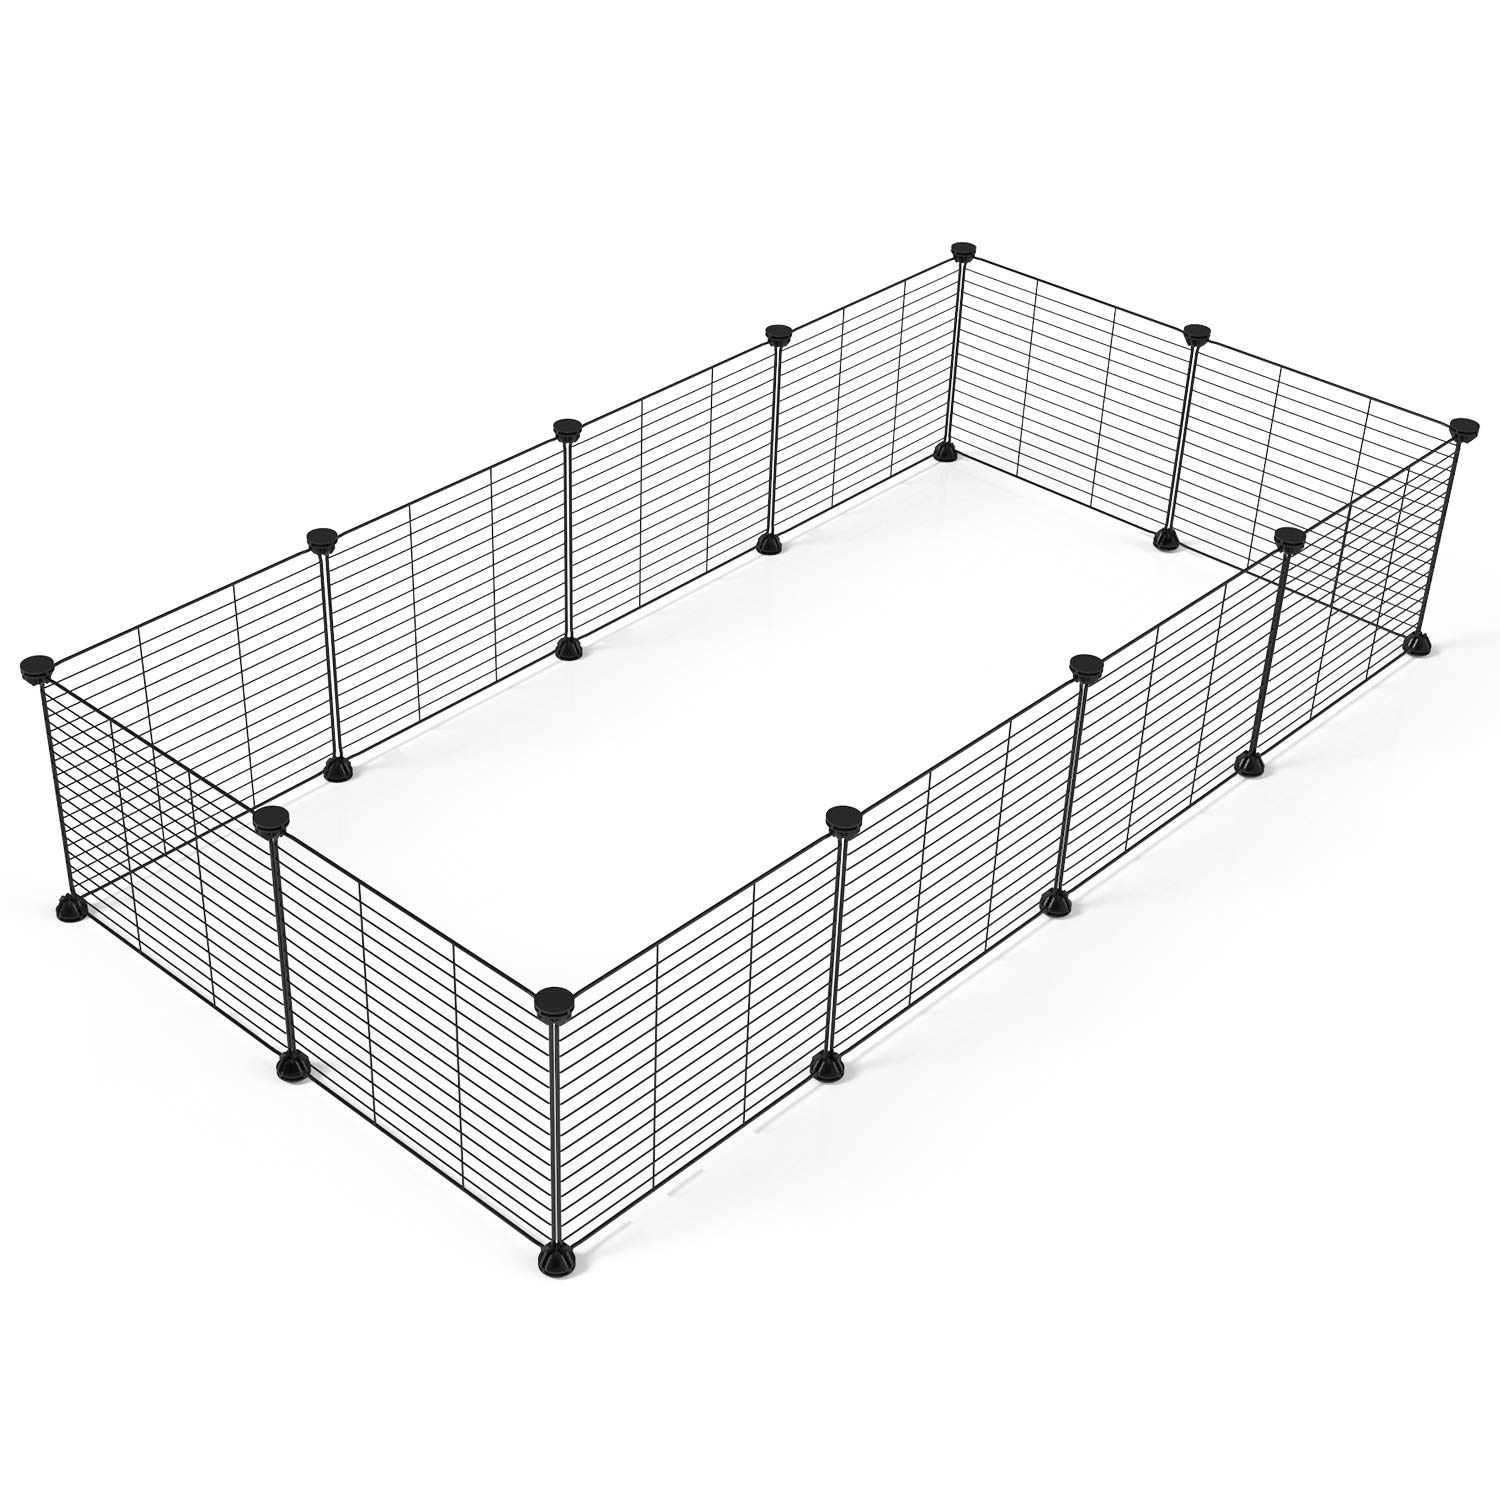 Tespo Pet Playpen, Small Animal Cage Indoor Portable Metal Wire yd Fence for Small Animals, Guinea Pigs, Rabbits Kennel Crate Fence Tent, Black 12 Panels by Tespo